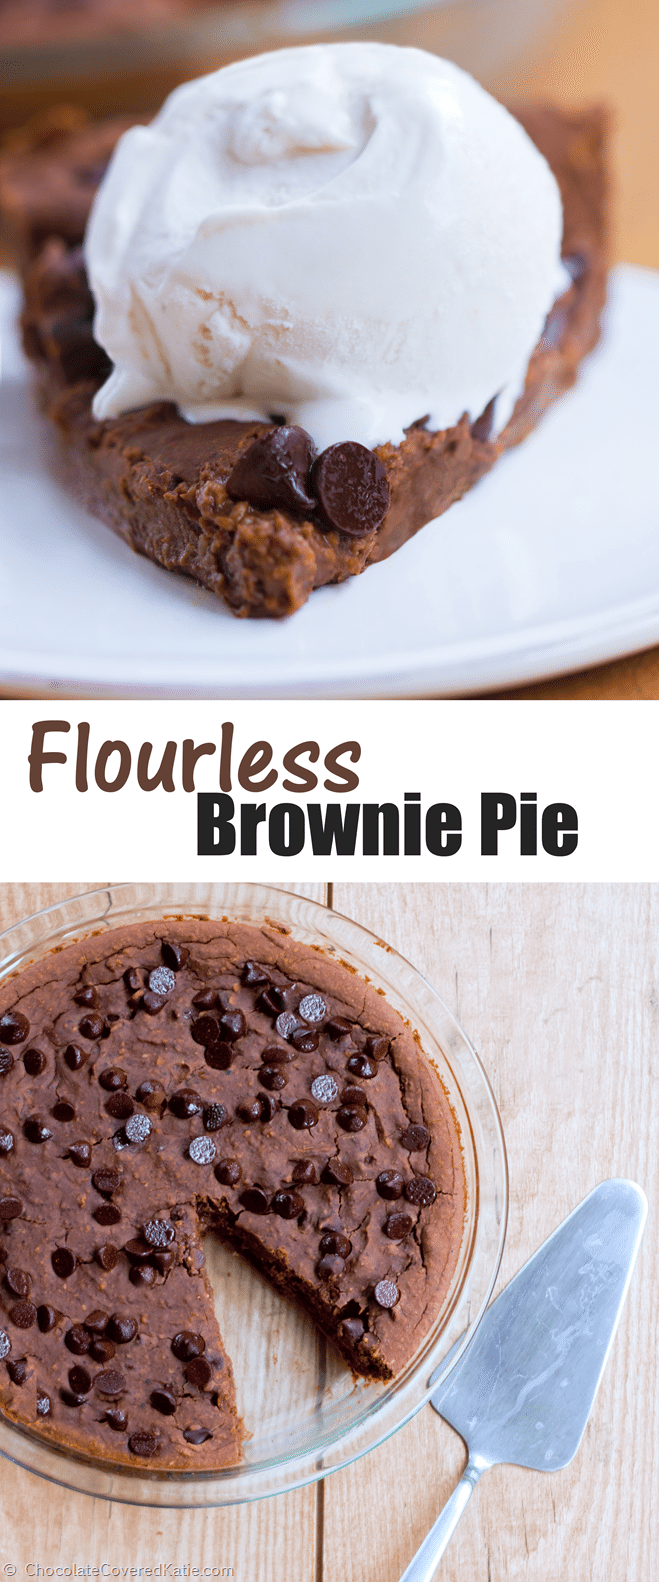 Flourless Chocolate Brownie Pie - Ingredients: 1/3 cup cocoa powder, 1 cup quick oats, 2 tsp vanilla extract, 2 1/2 tbsp... Full recipe: http://chocolatecoveredkatie.com/2015/02/02/flourless-chocolate-chip-brownie-pie/ @choccoveredkt